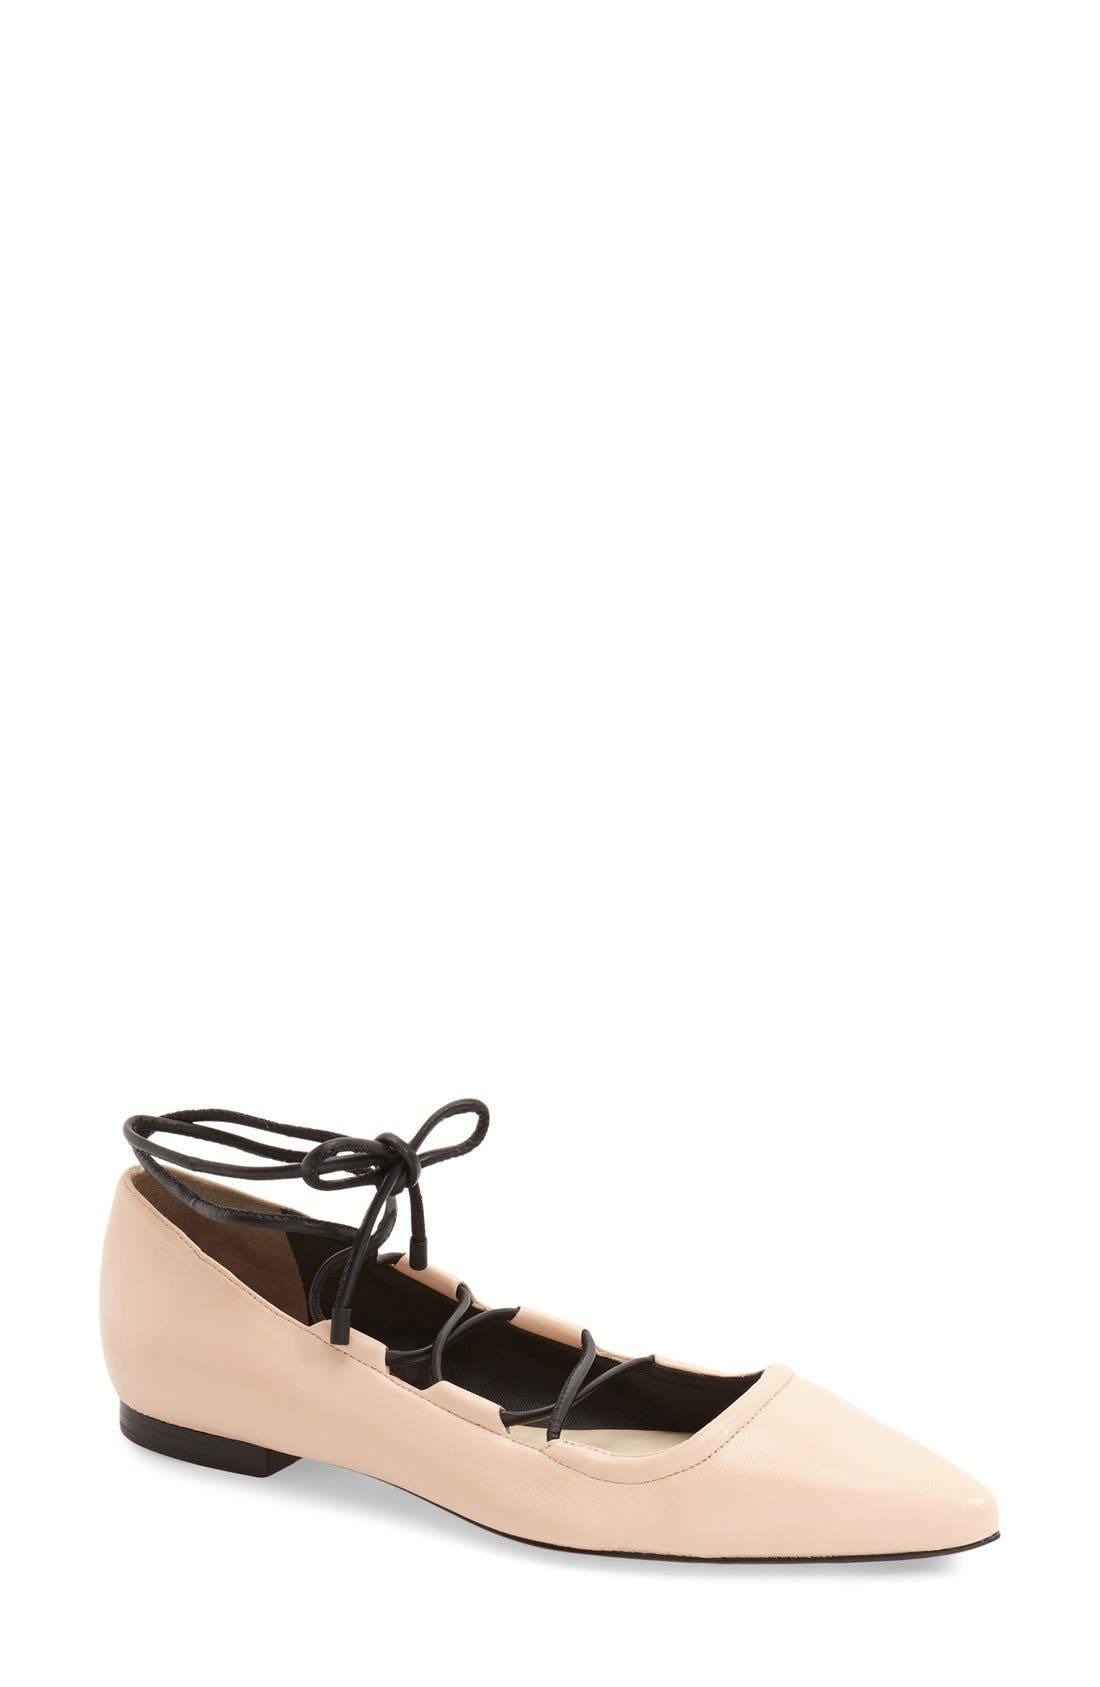 Alternate Image 1 Selected - 3.1 Phillip Lim 'Martini' Lace-Up Flat (Women)